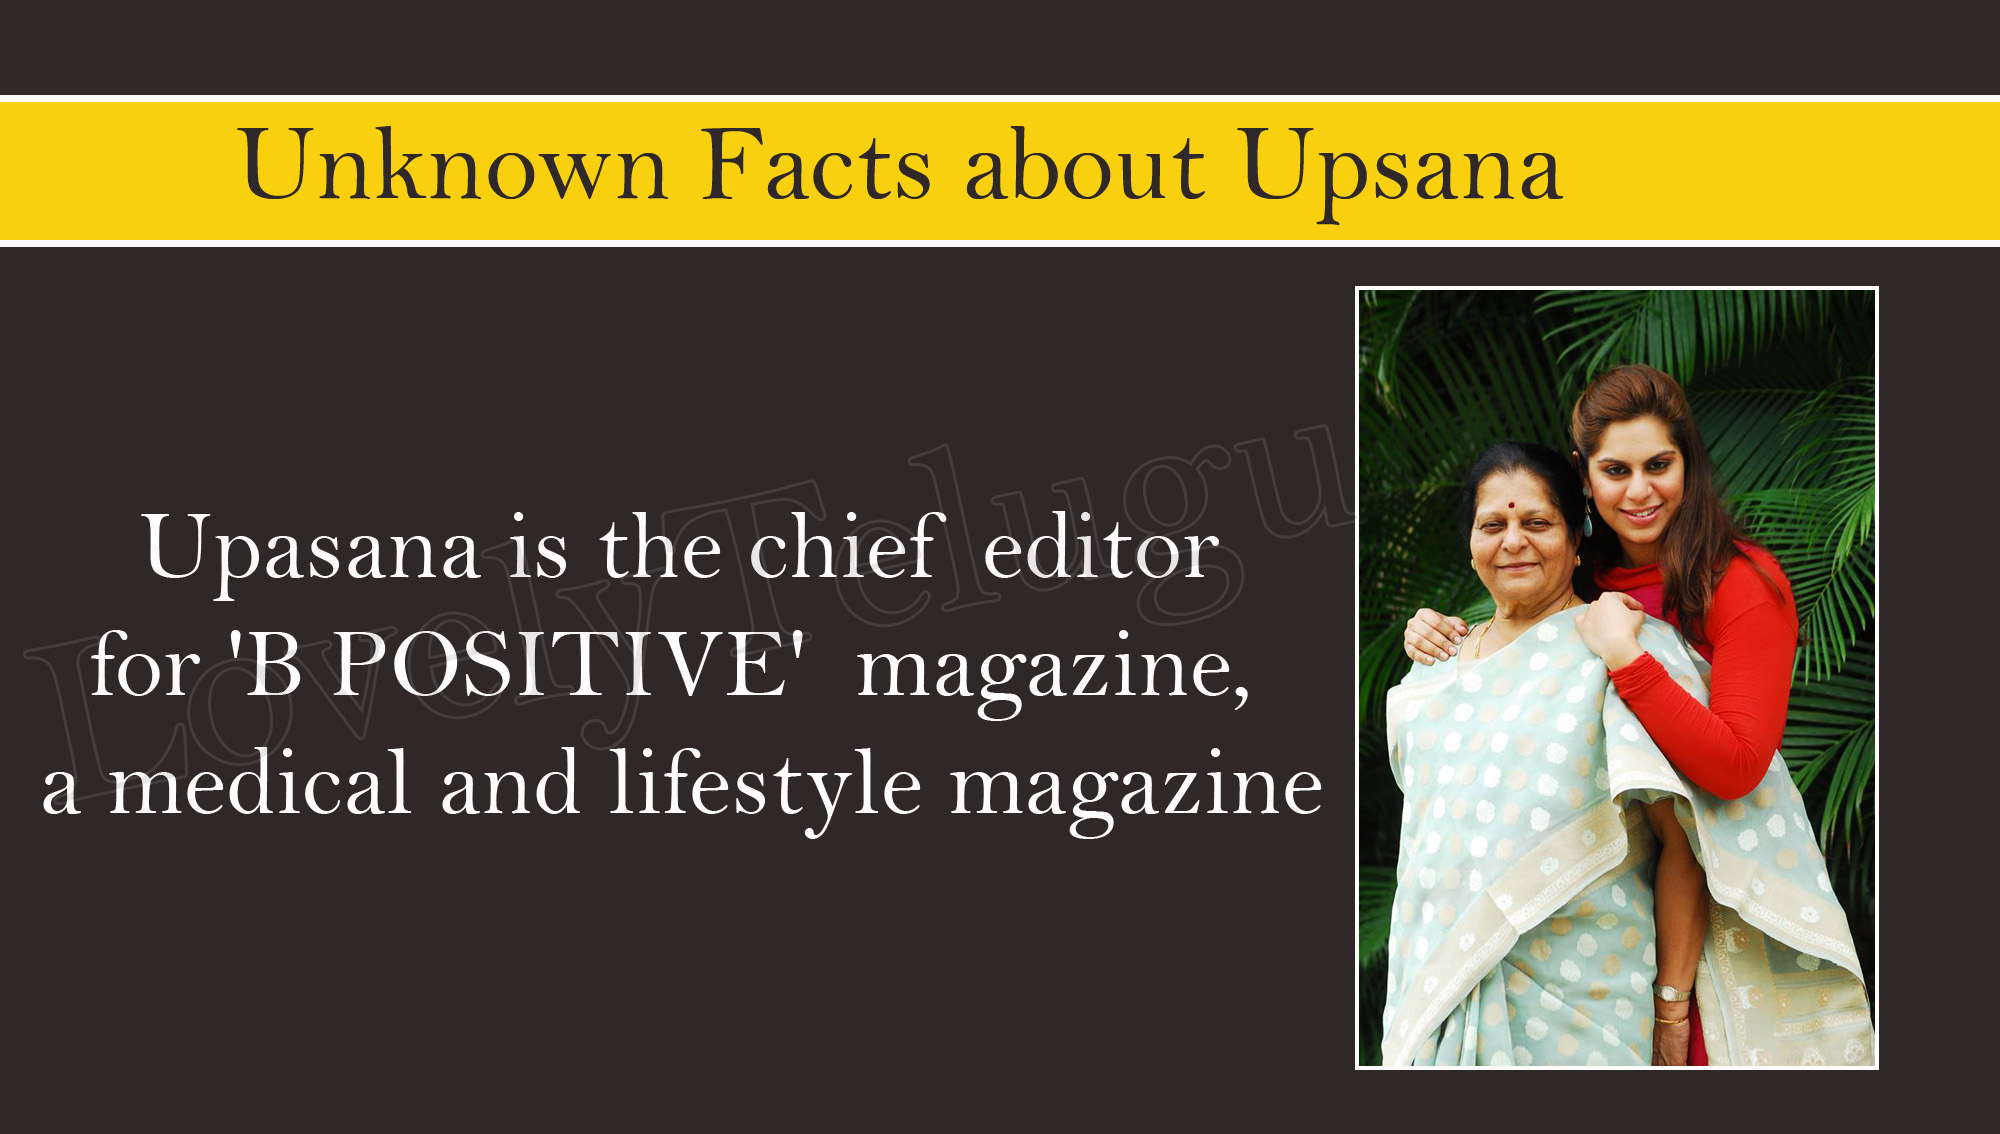 Upasana is the chief editor for 'B POSITIVE' magazine, a medical and lifestyle magazine.